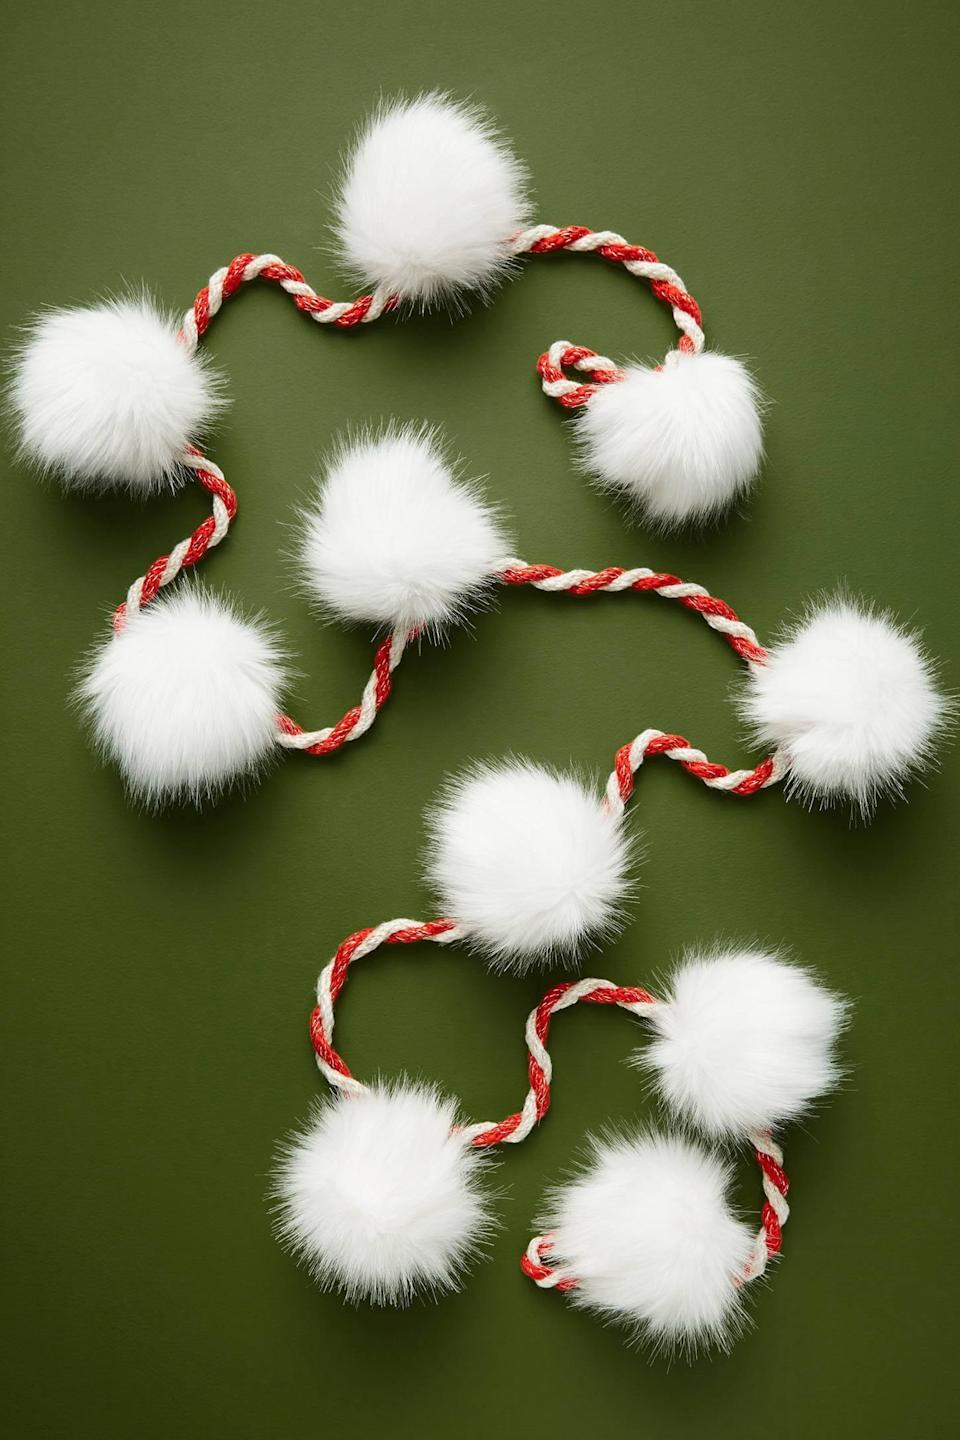 """<p>Not only does the <a href=""""https://www.popsugar.com/buy/Candy-Cane-Garland-490543?p_name=Candy%20Cane%20Garland&retailer=anthropologie.com&pid=490543&price=38&evar1=casa%3Aus&evar9=46615300&evar98=https%3A%2F%2Fwww.popsugar.com%2Fhome%2Fphoto-gallery%2F46615300%2Fimage%2F46615414%2FCandy-Cane-Garland&list1=shopping%2Canthropologie%2Choliday%2Cchristmas%2Cchristmas%20decorations%2Choliday%20decor%2Chome%20shopping&prop13=mobile&pdata=1"""" rel=""""nofollow noopener"""" class=""""link rapid-noclick-resp"""" target=""""_blank"""" data-ylk=""""slk:Candy Cane Garland"""">Candy Cane Garland</a> ($38) represent our favorite holiday candy, but its pom-poms give us a very Dr. Seuss vibe.</p>"""